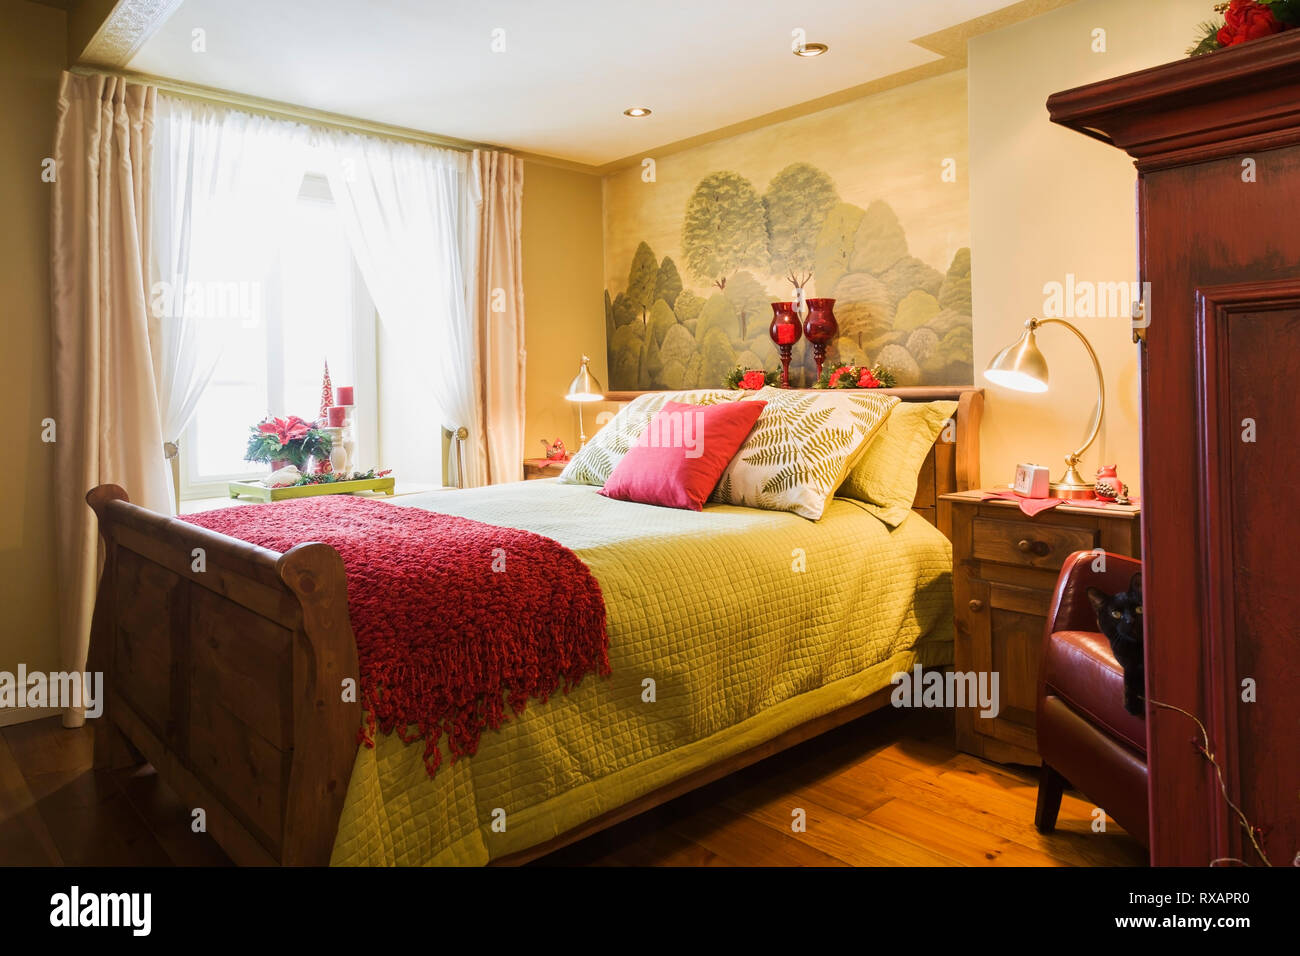 Queen size wooden sleigh bed in guest bedroom on the groung floor inside an old (circa 1840) Canadiana cottage style home, Quebec, Canada. This image  - Stock Image